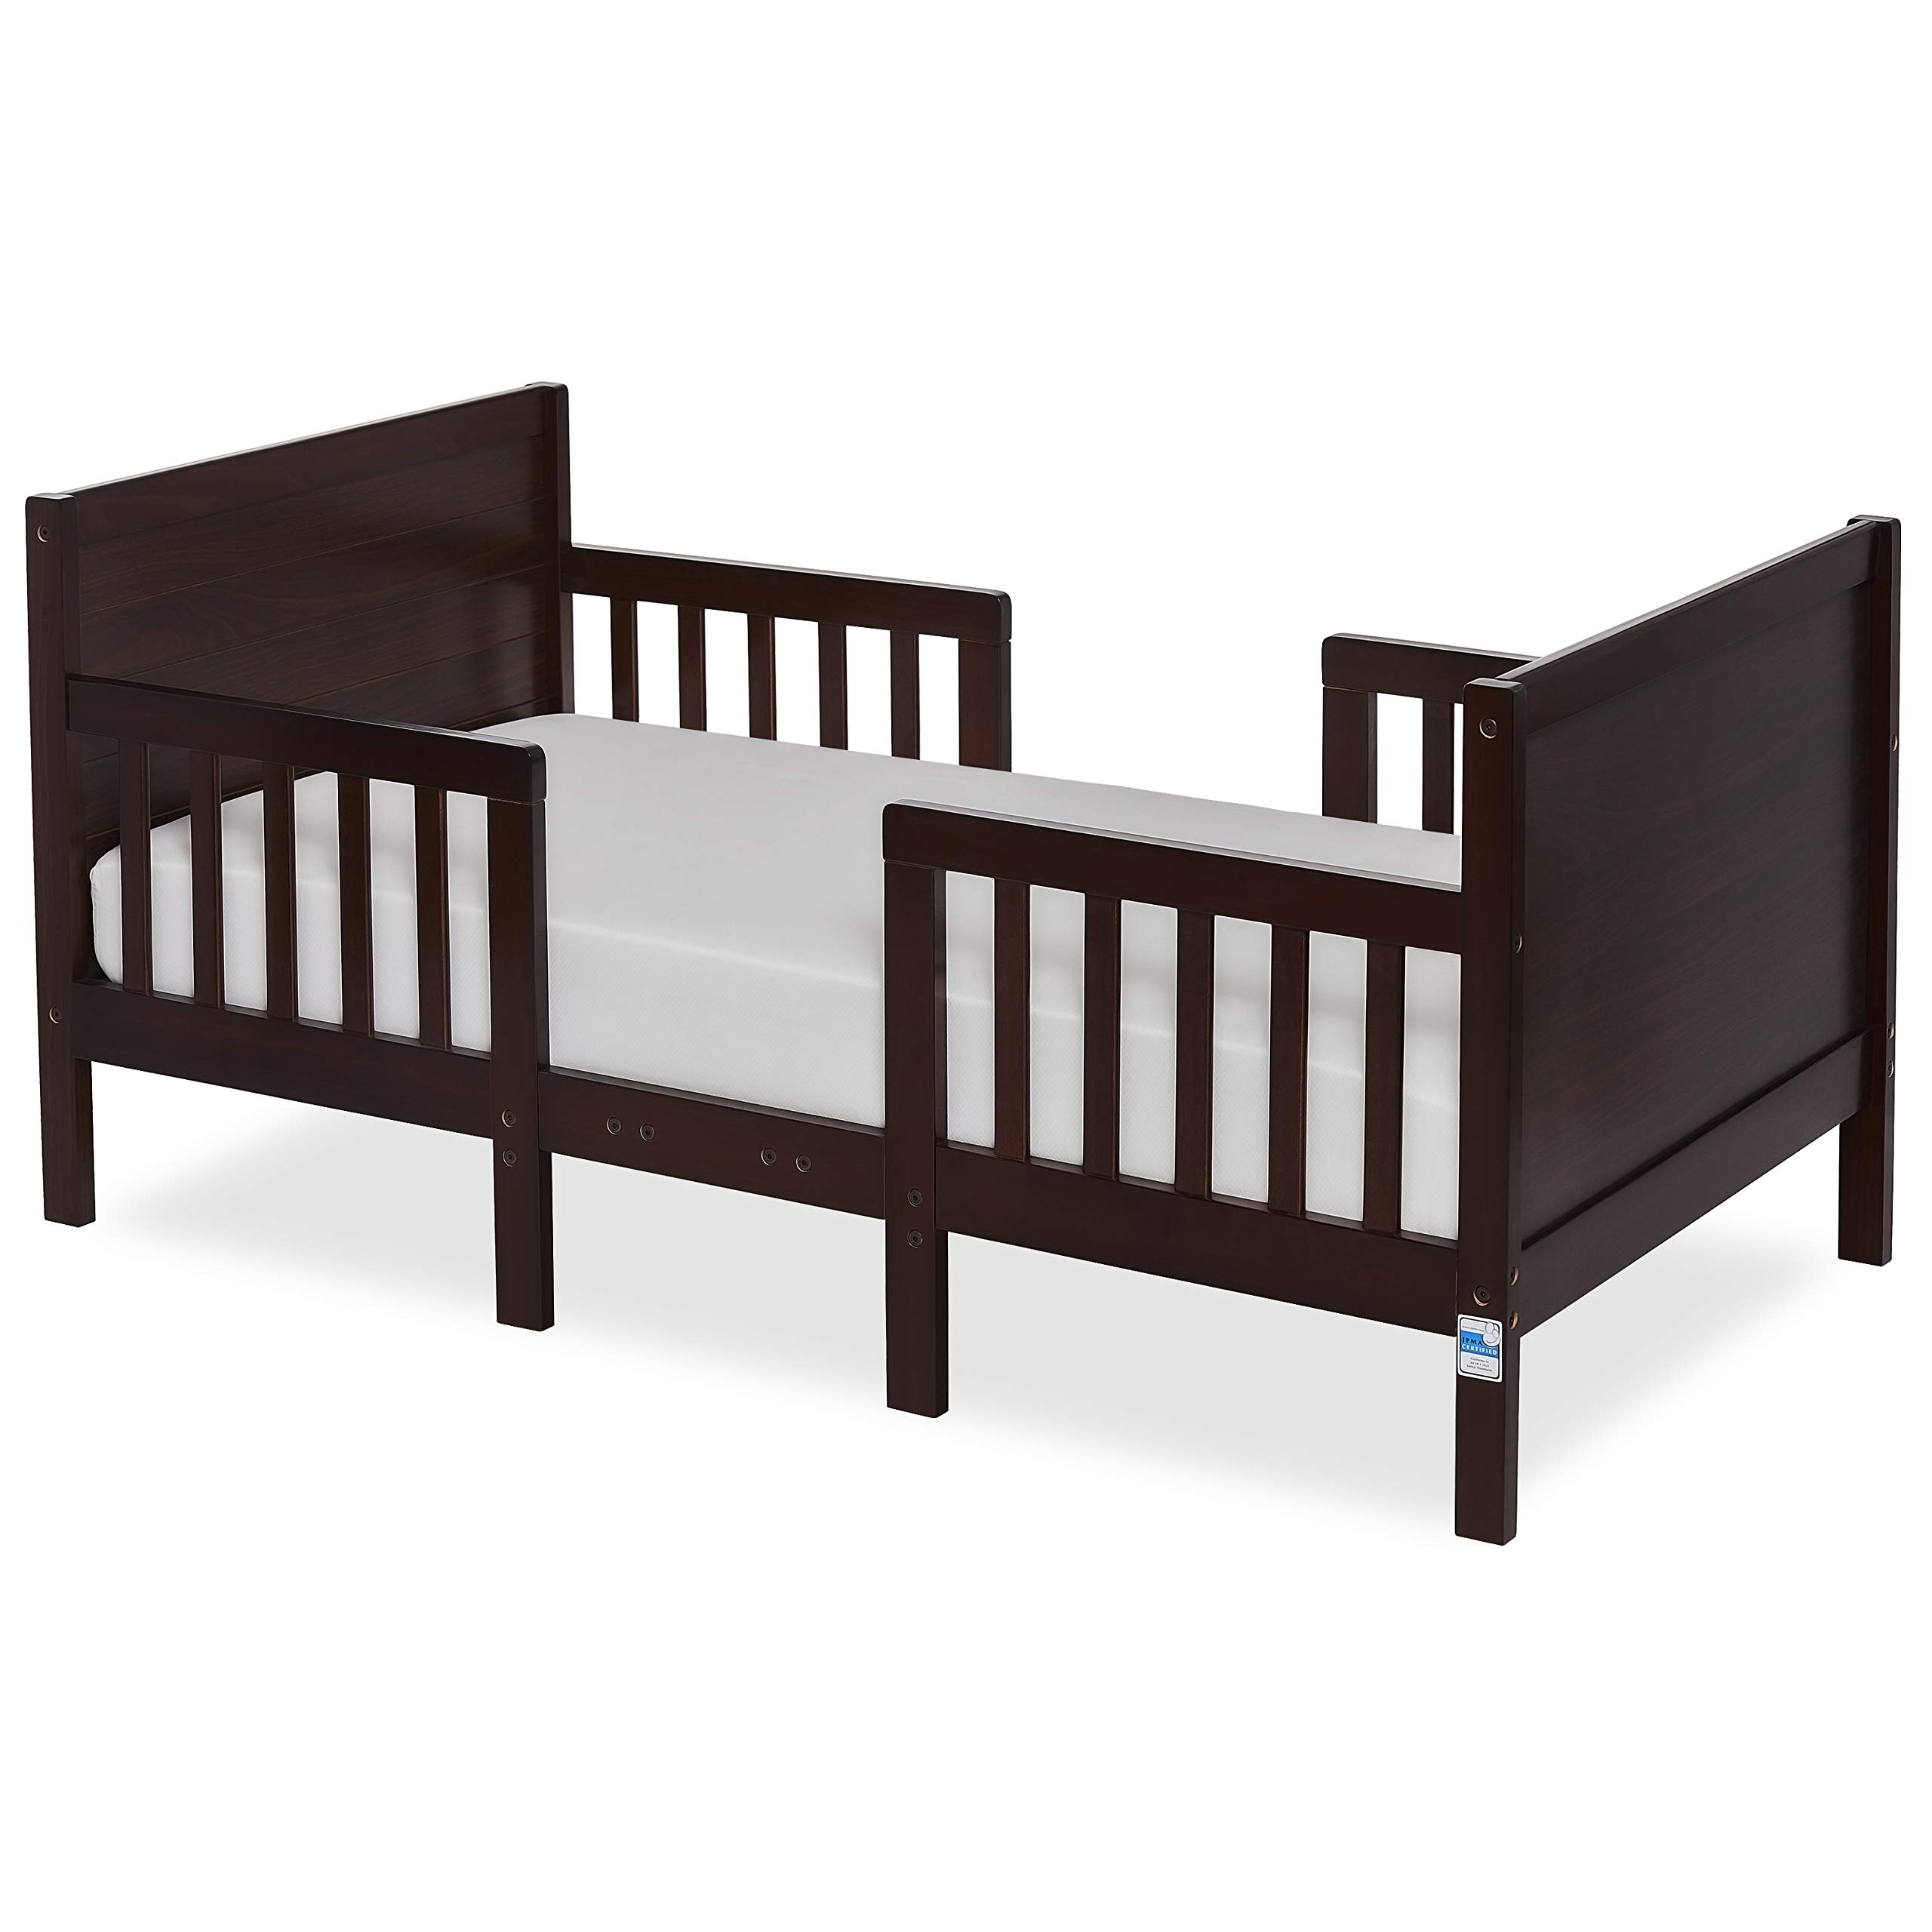 Dream On Me Hudson 3 In 1 Convertible Toddler Bed, Espresso by Dream On Me